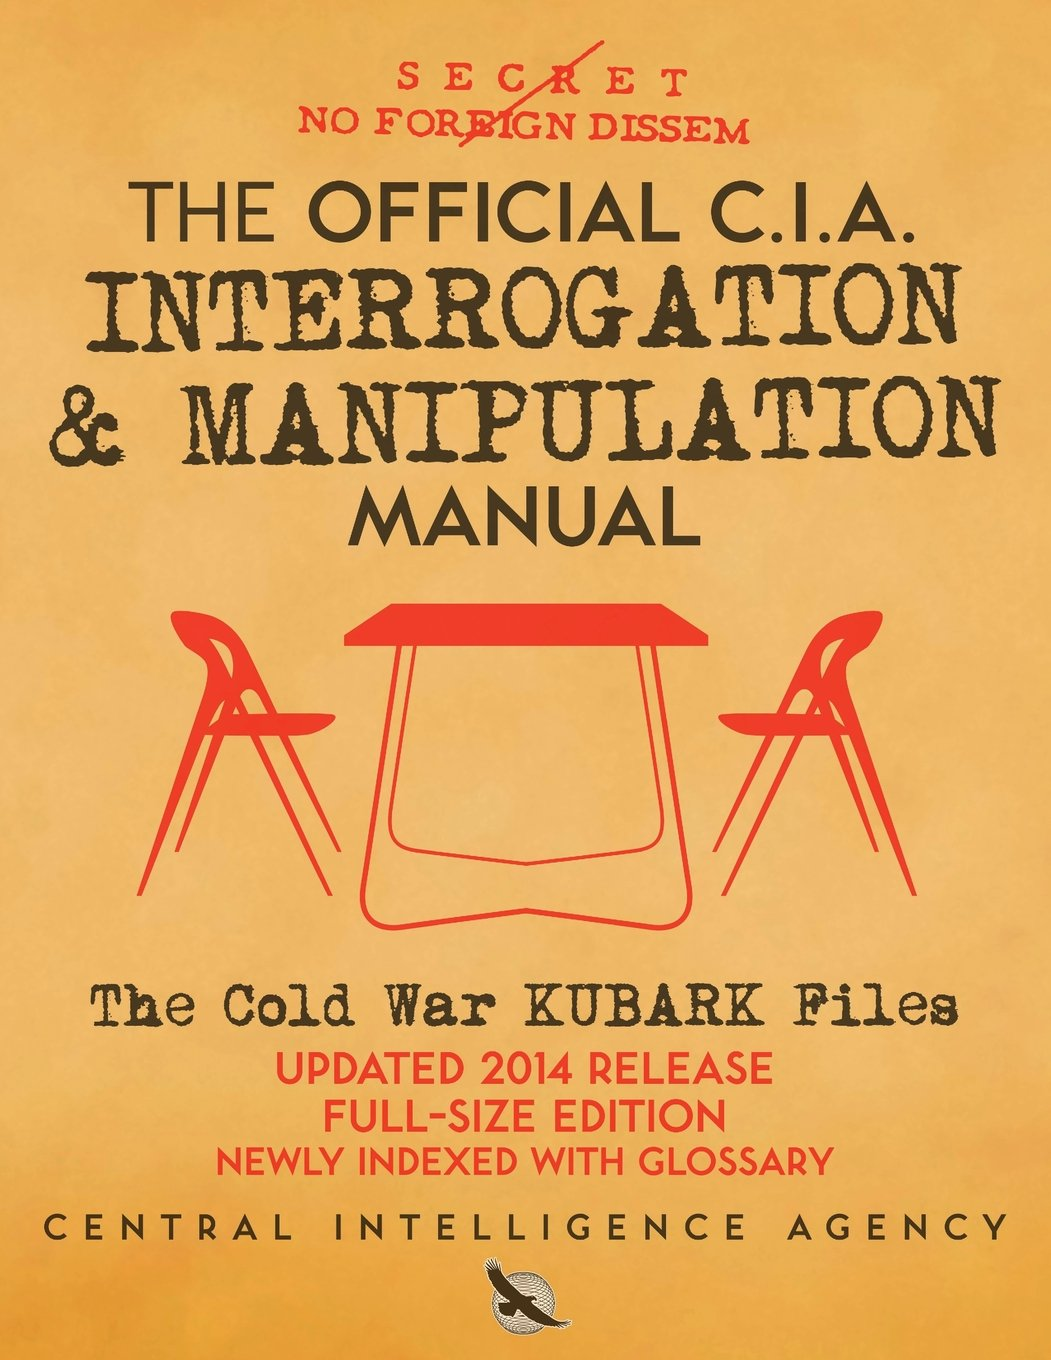 The Official CIA Interrogation & Manipulation Manual: The Cold War KUBARK  Files - Updated 2014 Release, Full-Size Edition, Newly Indexed with  Glossary (Carlile Intelligence Library): Agency, Central Intelligence,  Media, Carlile, Media, Carlile: